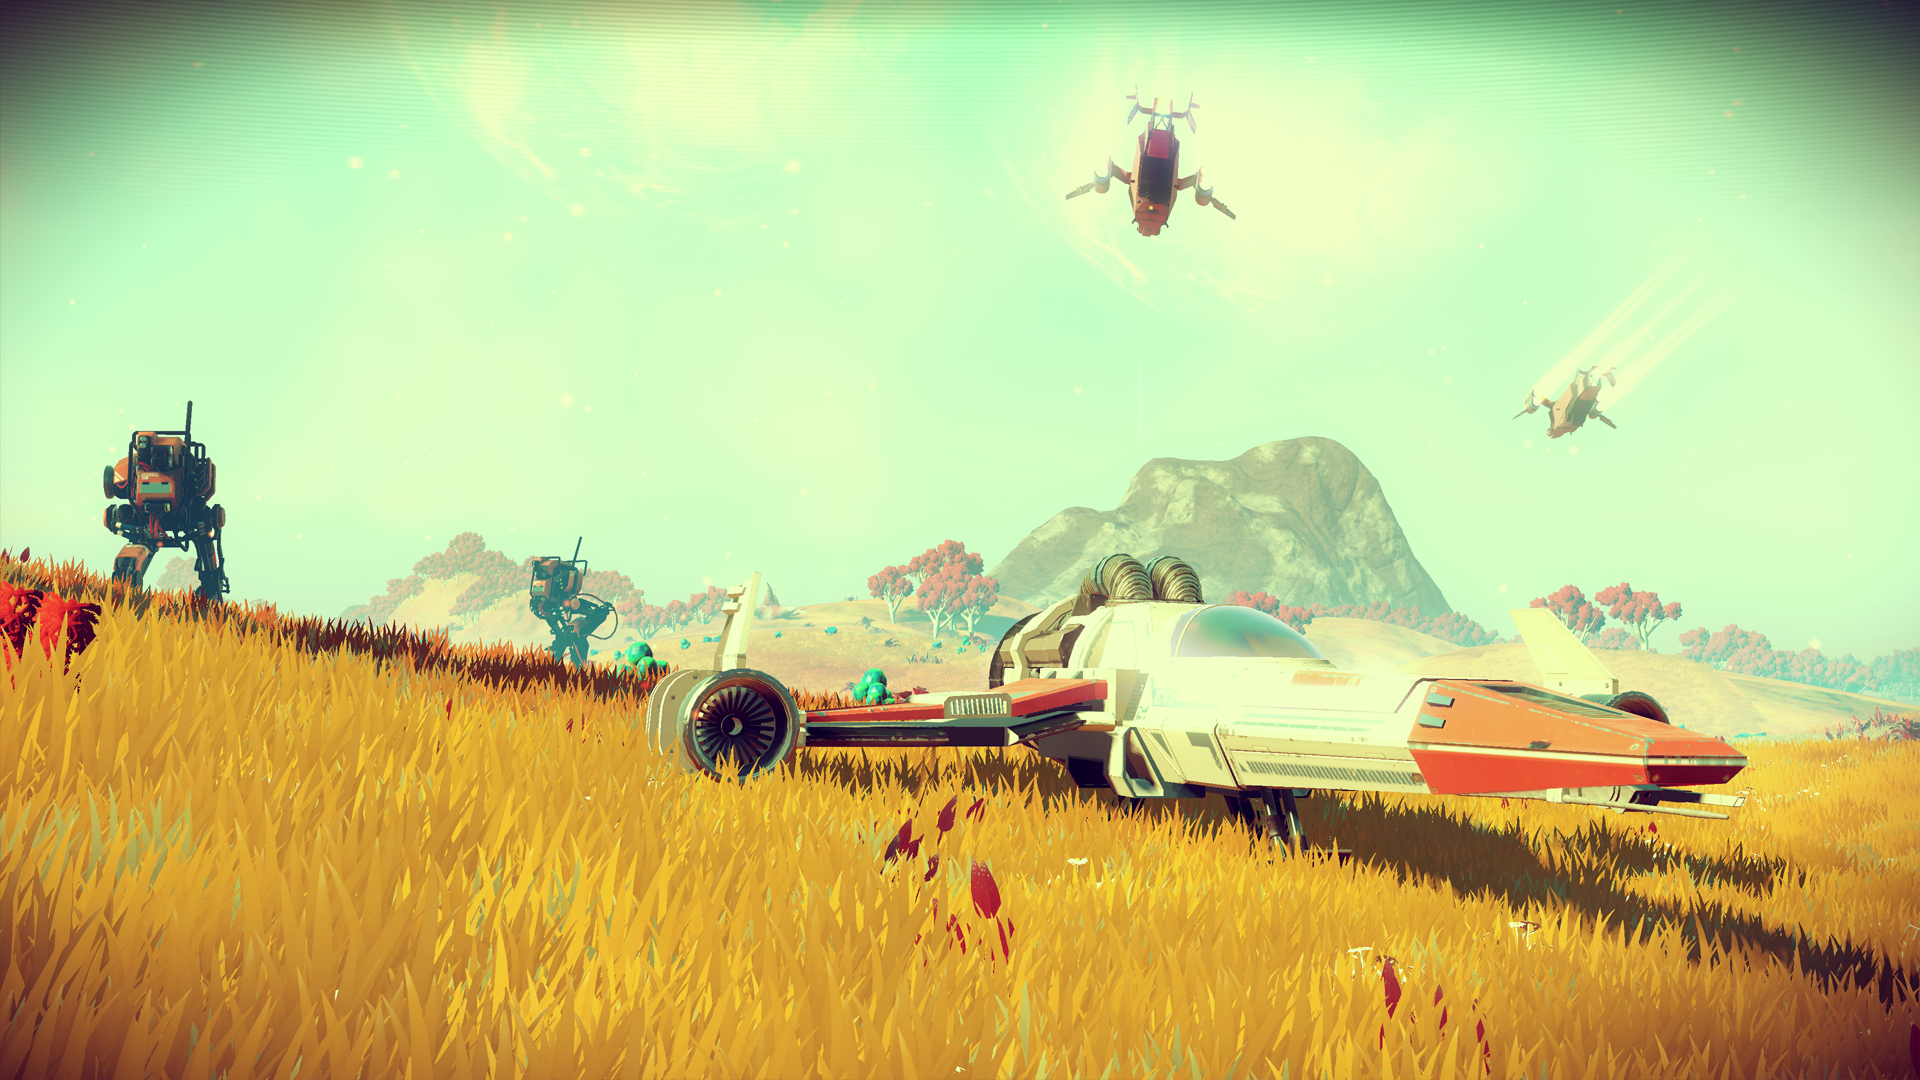 'No Man's Sky' lore comes from classic sci-fi and comics